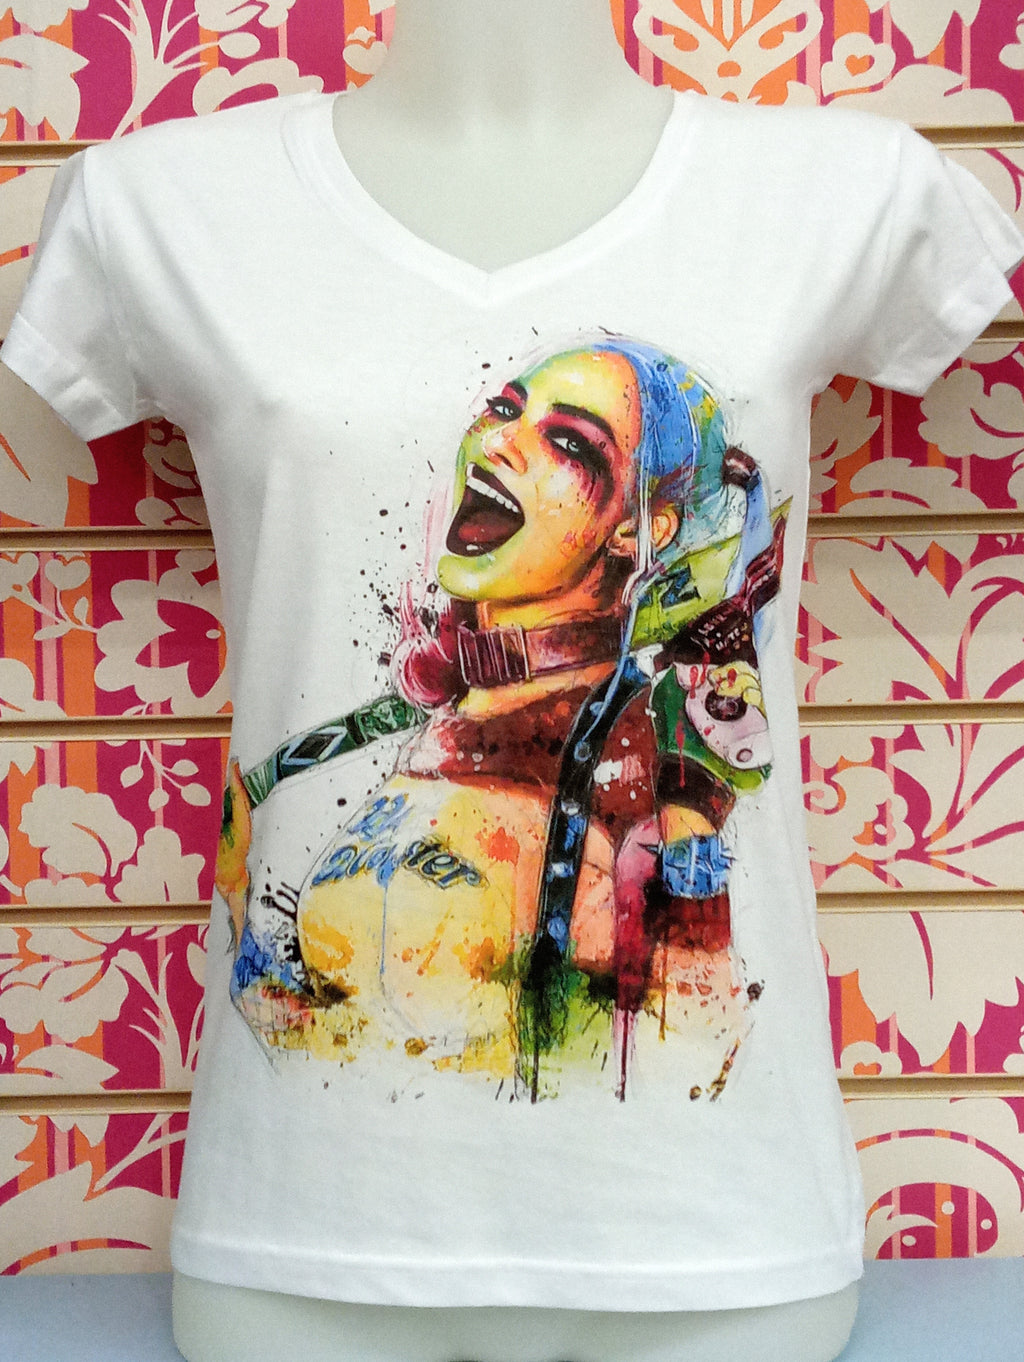 18-20-69 HARLEY QUINN - JHK TSRLCMFP  DONNA - STREET STYLE PRINT stampa personalizzata